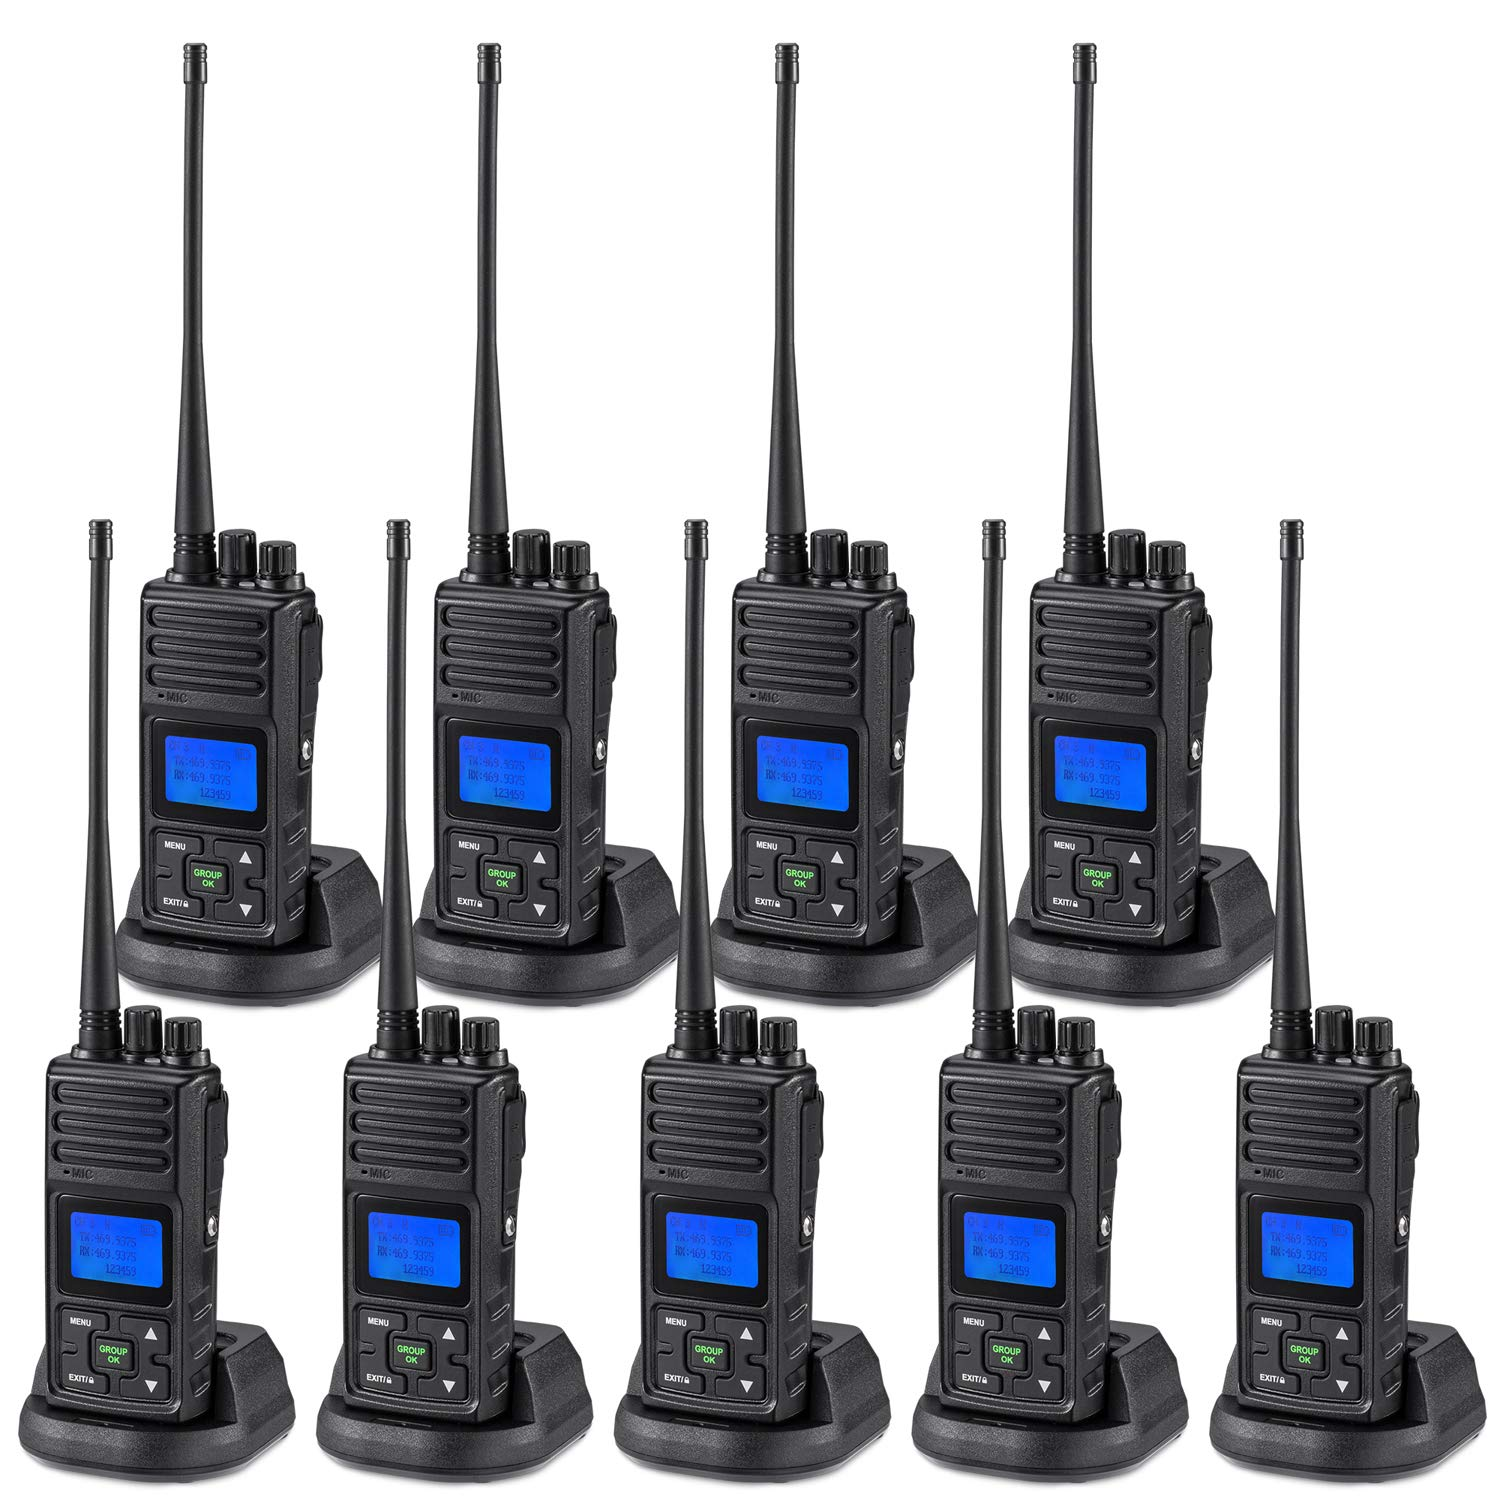 2 Way Radio Long Range, SAMCOM FPCN30A 20 Channel Walkie Talkie Up to 5 Miles, Rechargeable Hand-held Business Radio for Outdoor Hiking Hunting Travel (Pack of 9) by SAMCOM